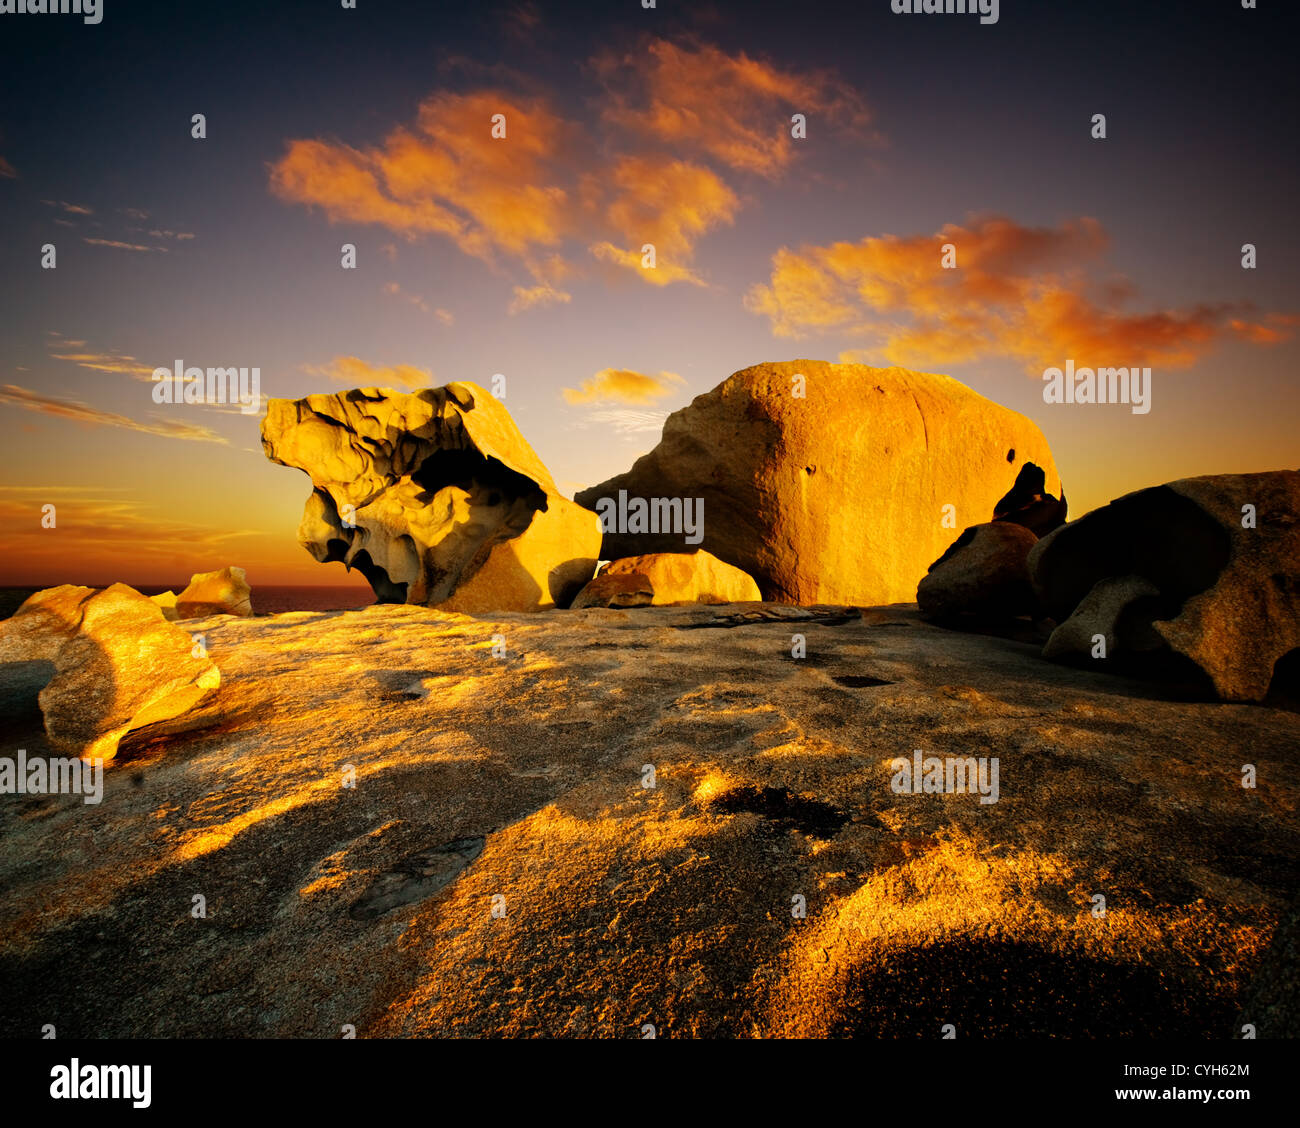 Coucher de soleil sur Remarkable Rocks, Kangaroo Island Photo Stock